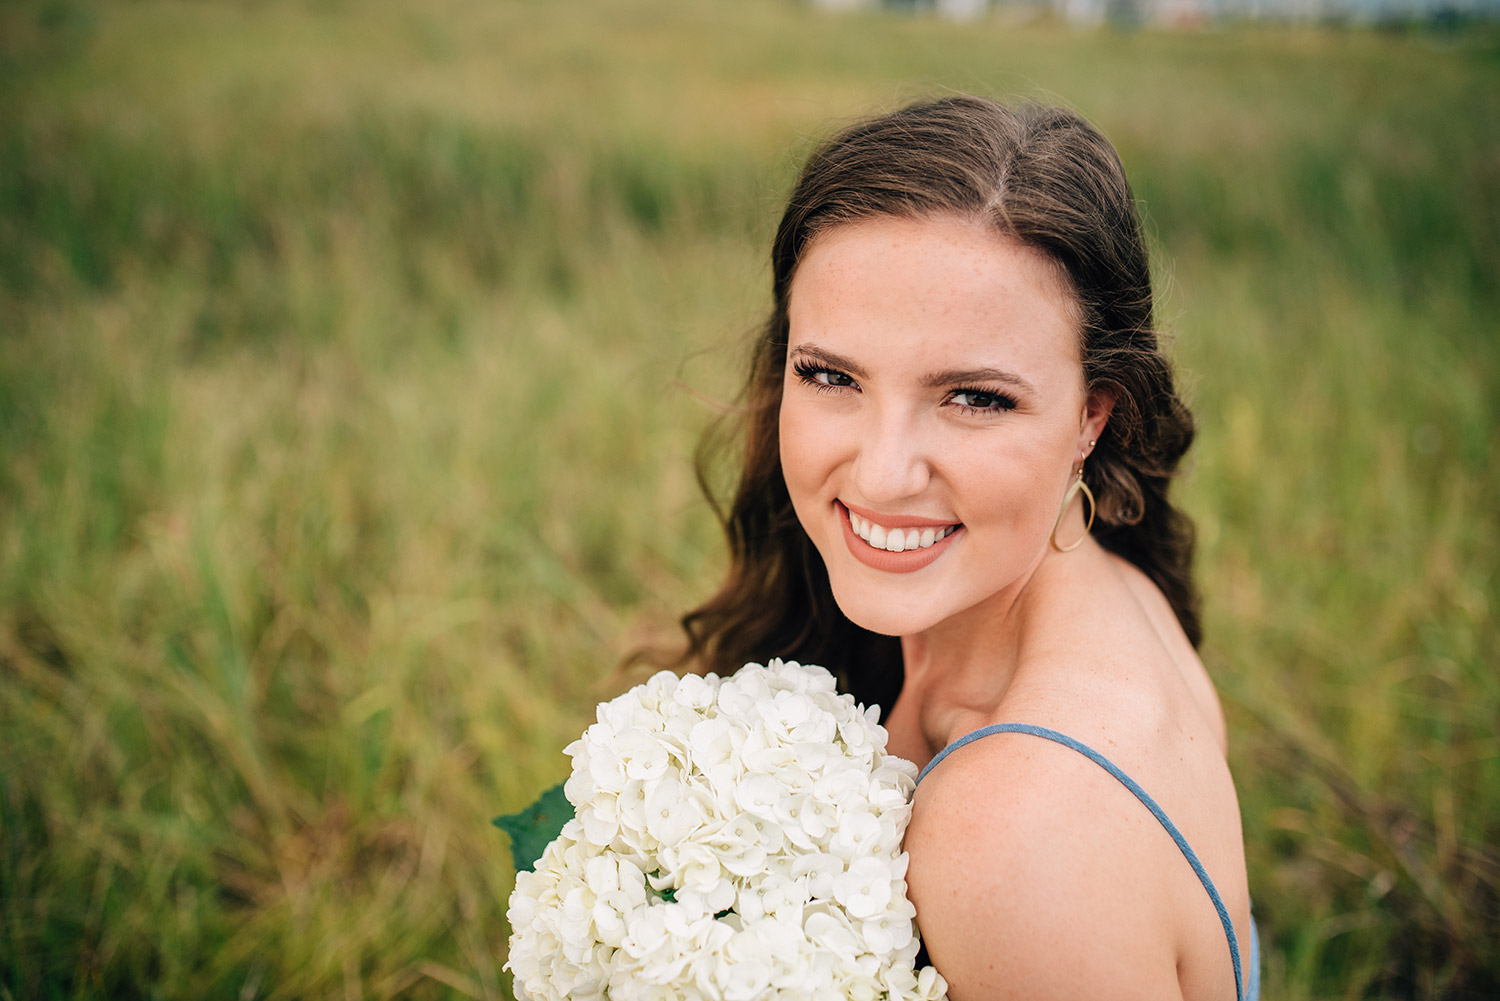 unclose picture of a girl with white bouquet of flowers